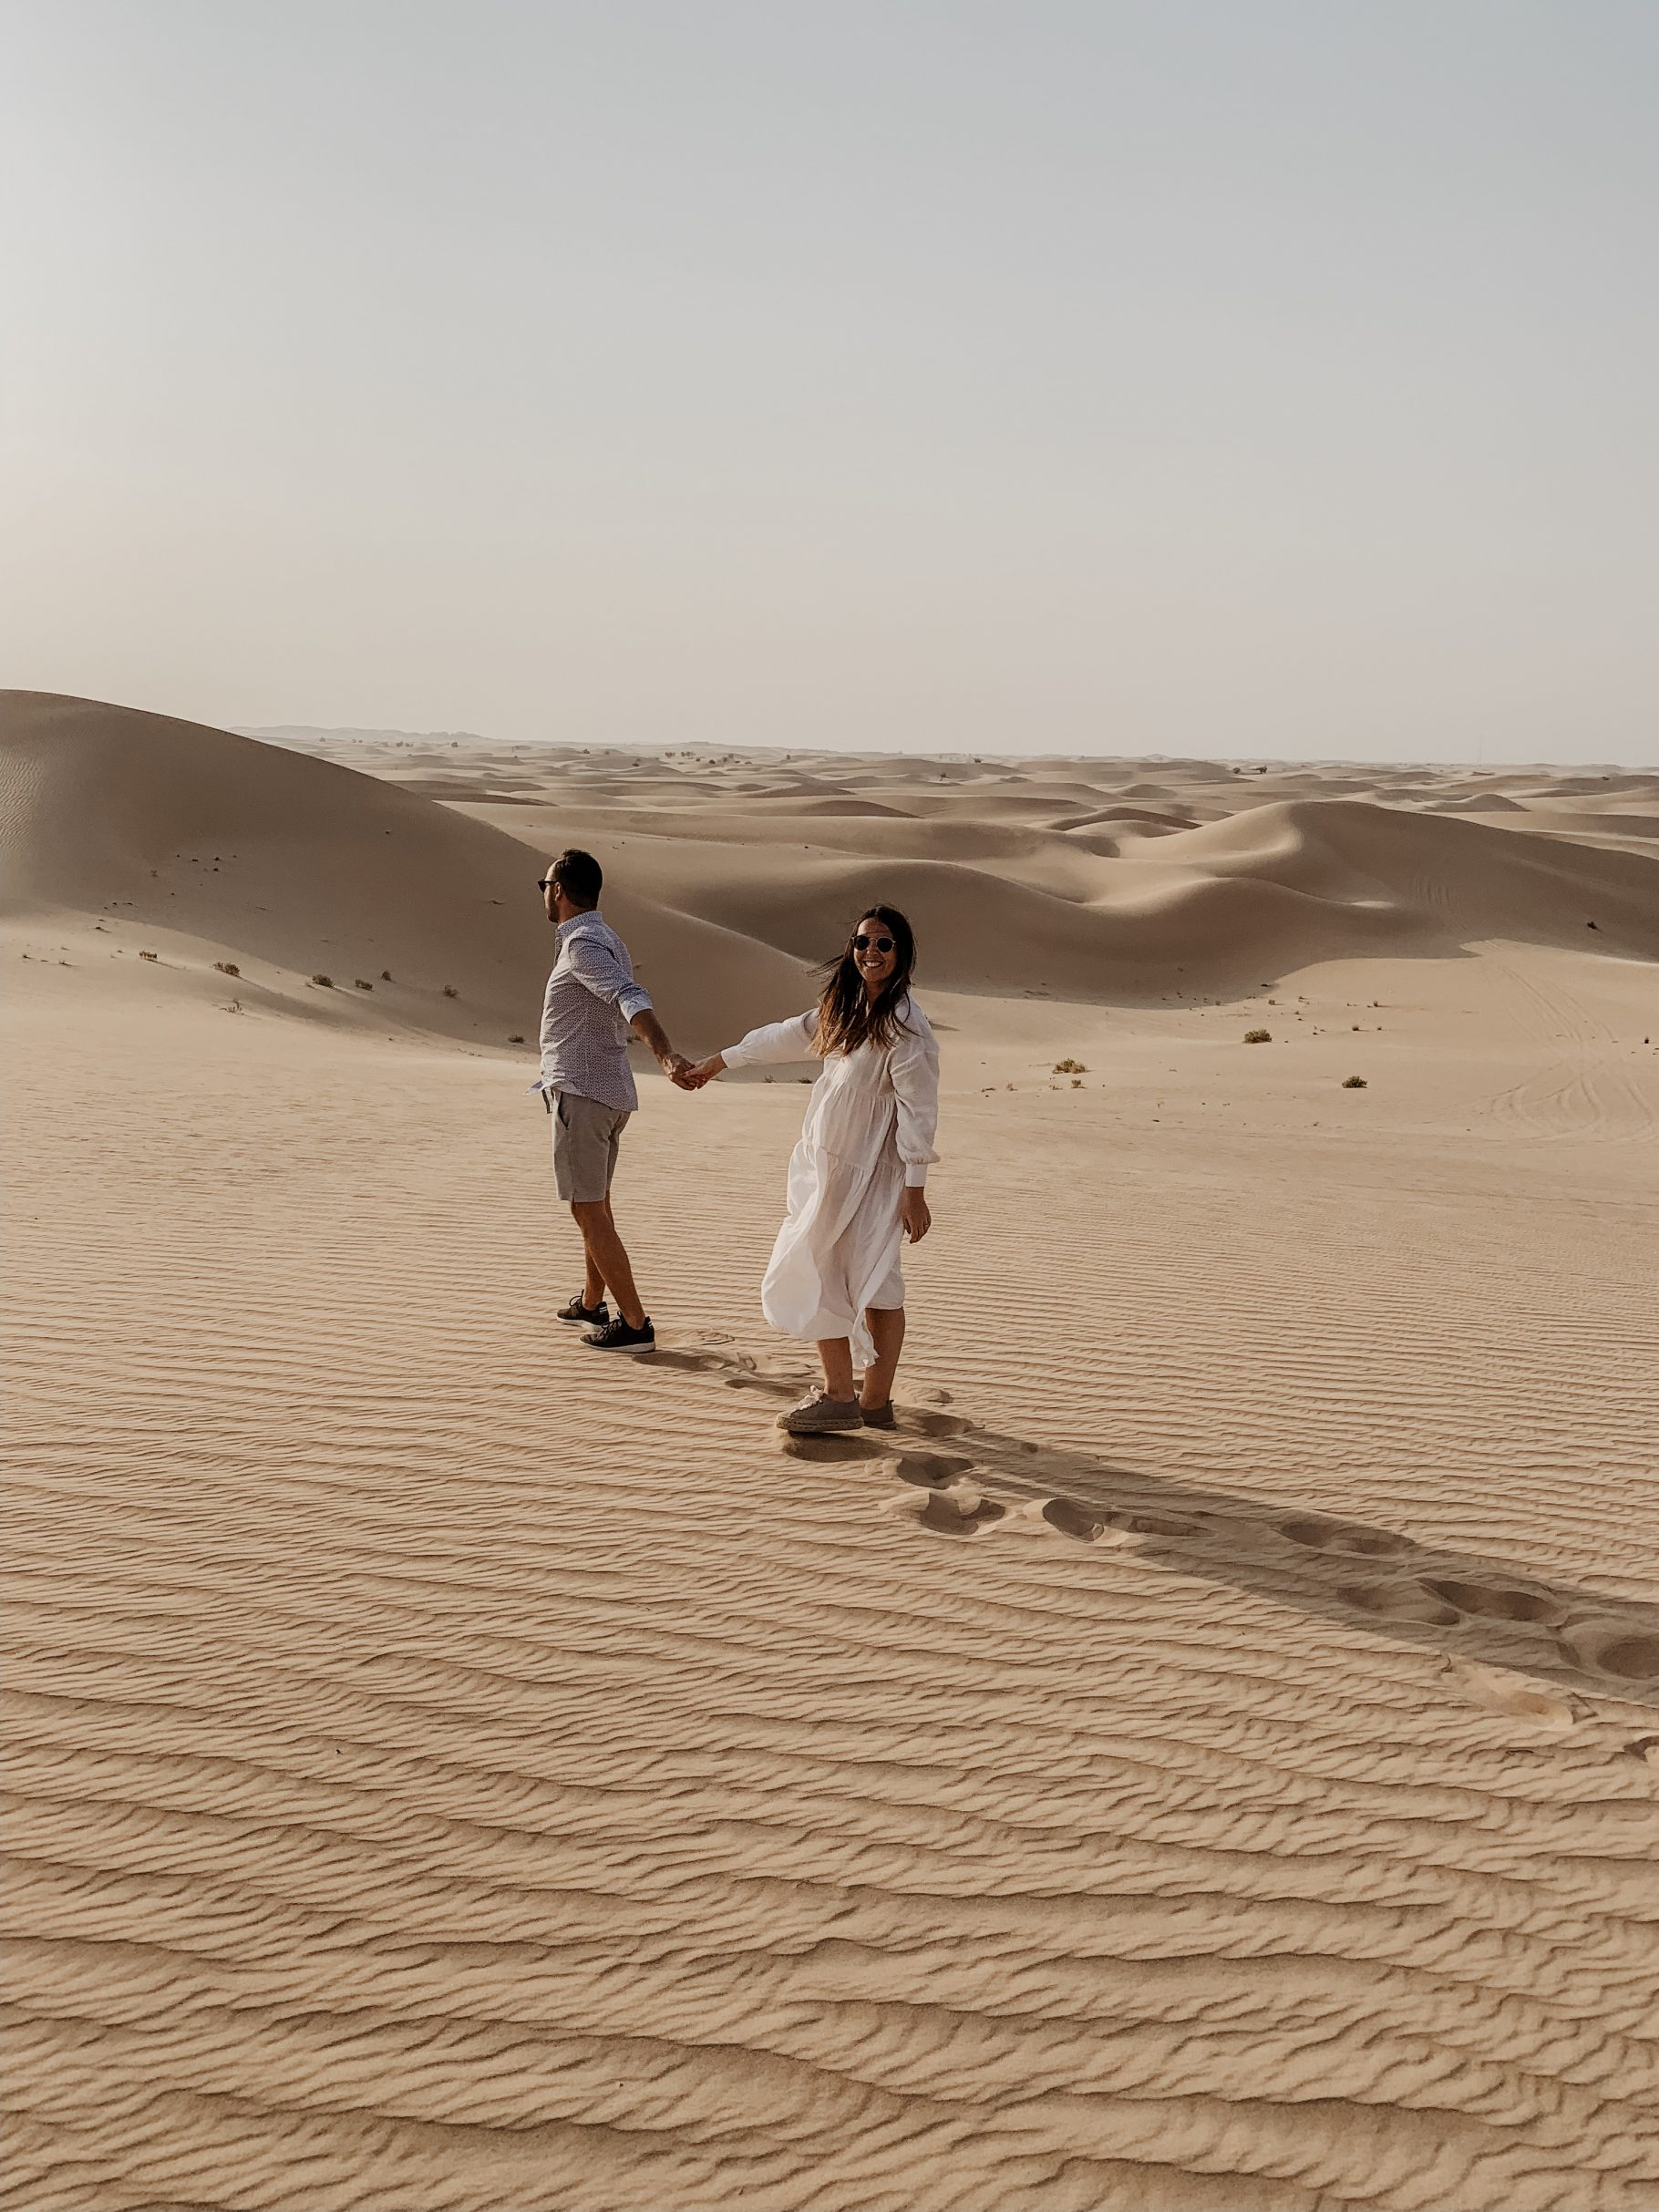 5 MUST-DO'S IN ABU DHABI